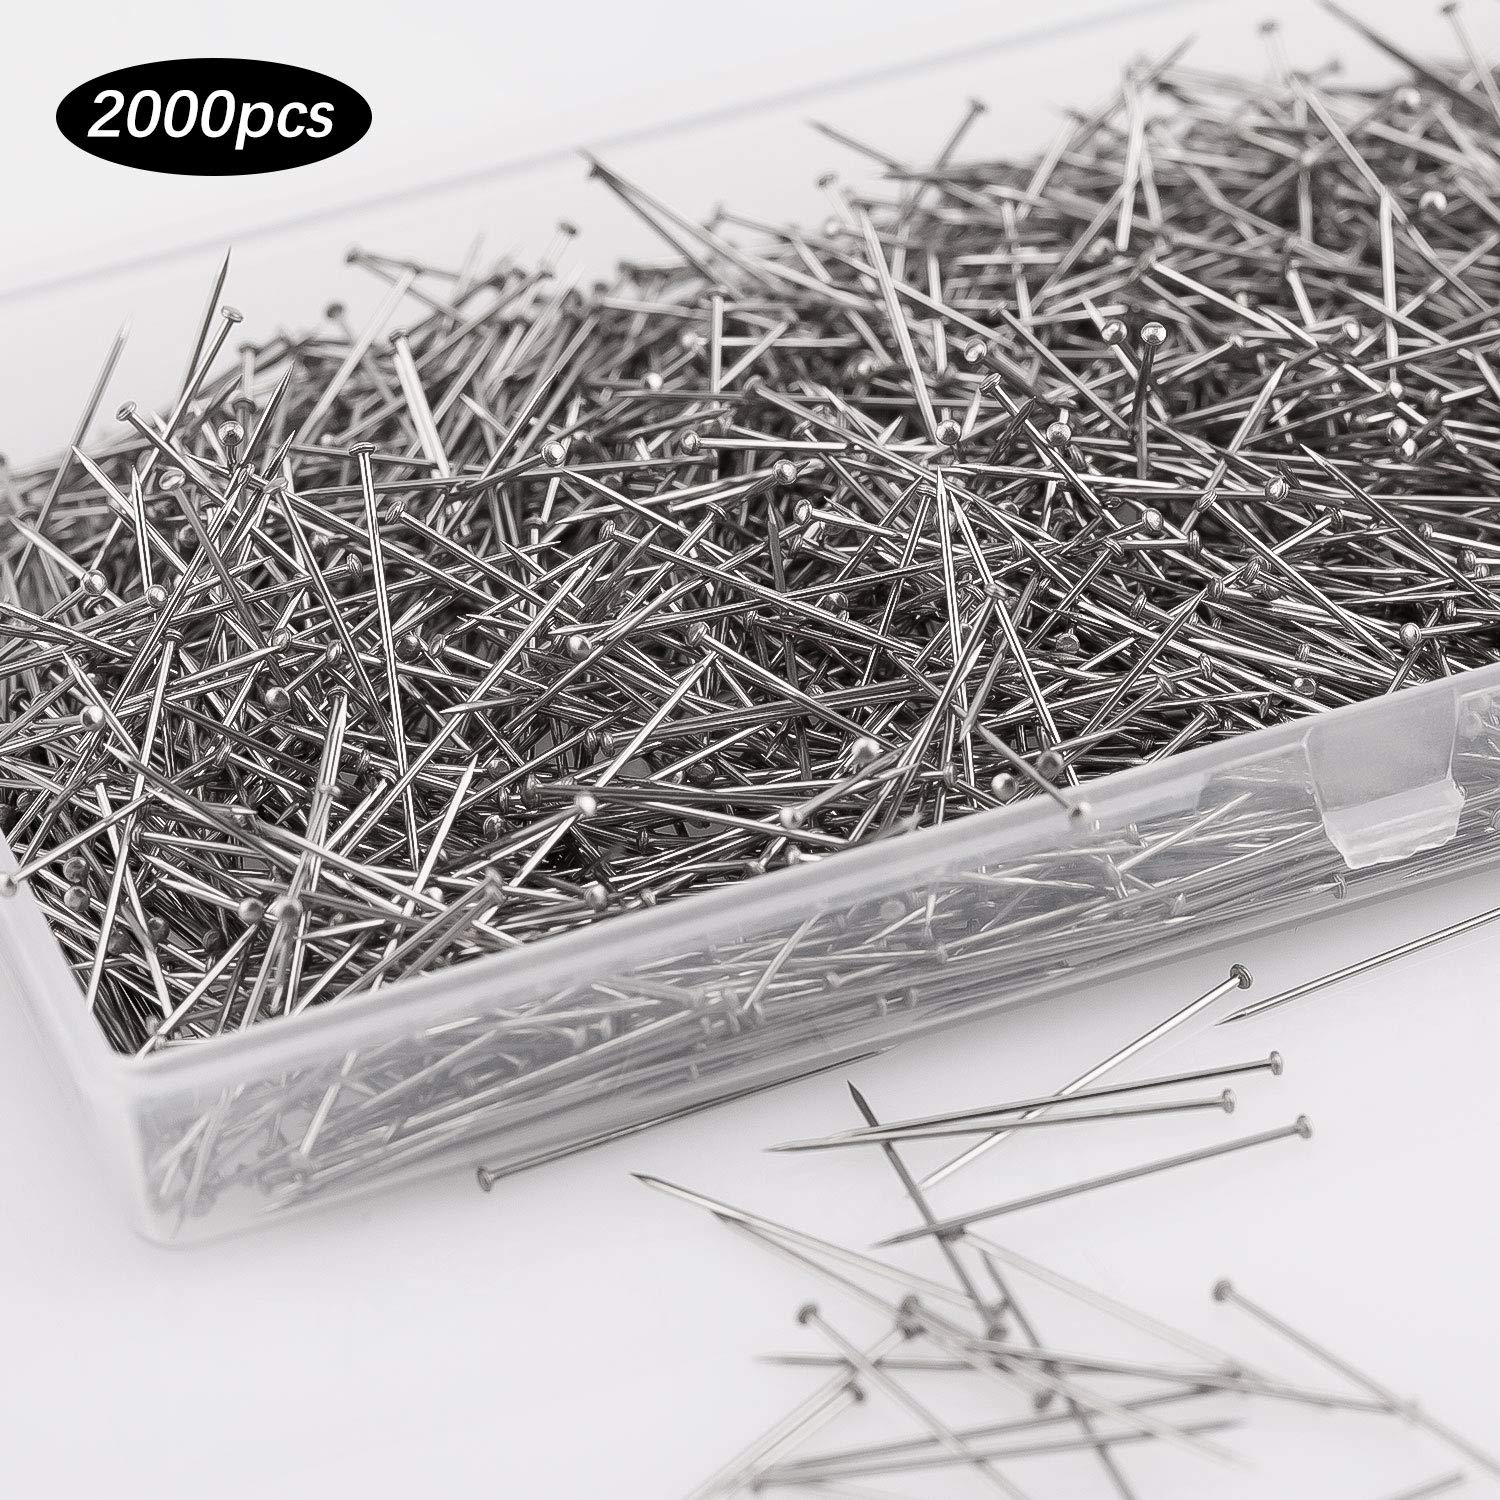 1 inch AIEX 2000 Pieces Sewing Pins Head Pins/Fine Satin Pin Straight for Dressmaker Jewelry Craft Sewing Projects